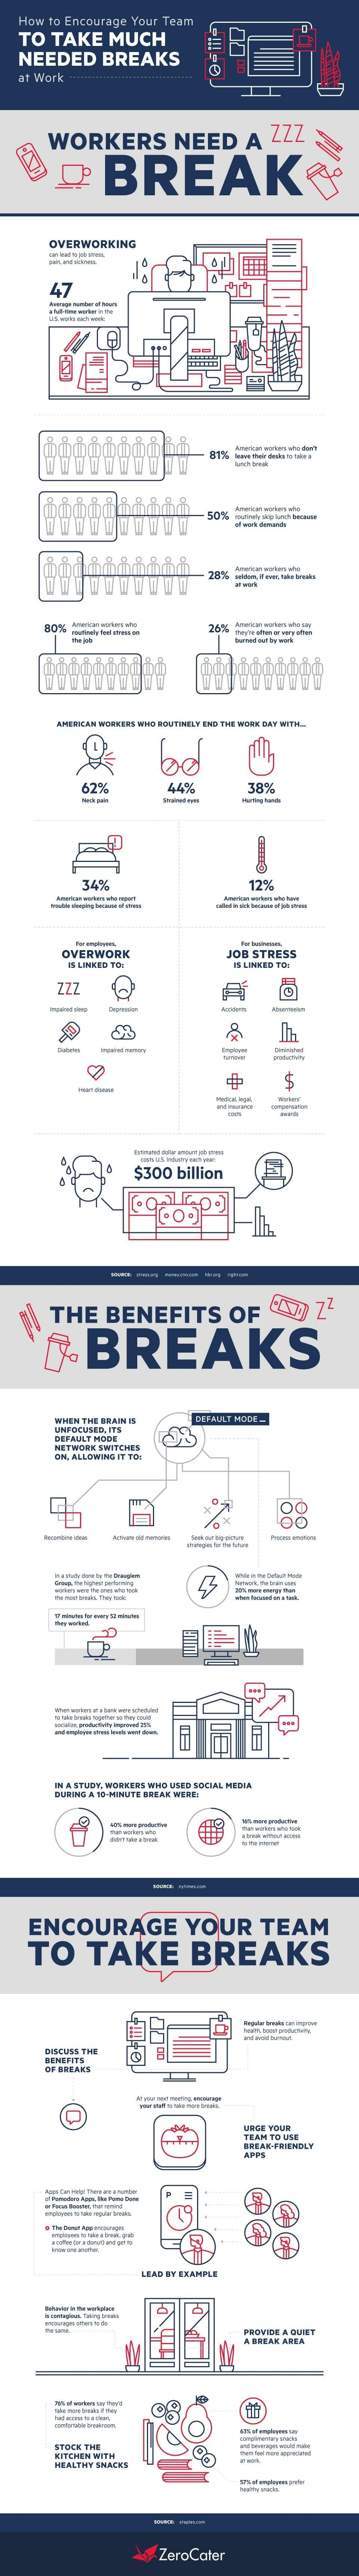 How to Encourage Your Team to Take Much Needed Breaks at Work #infographic